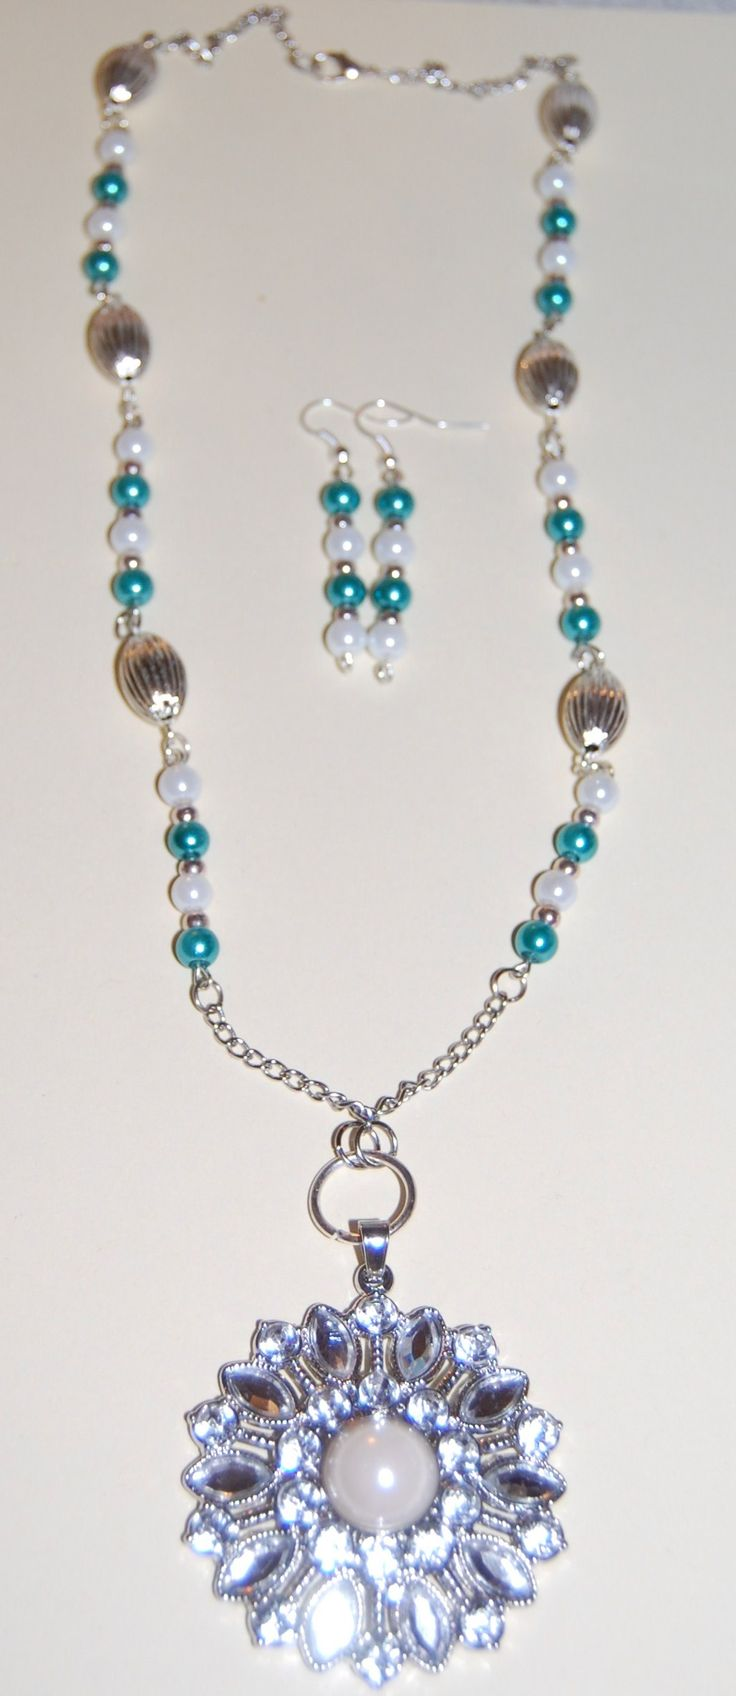 Women's necklace and earrings.